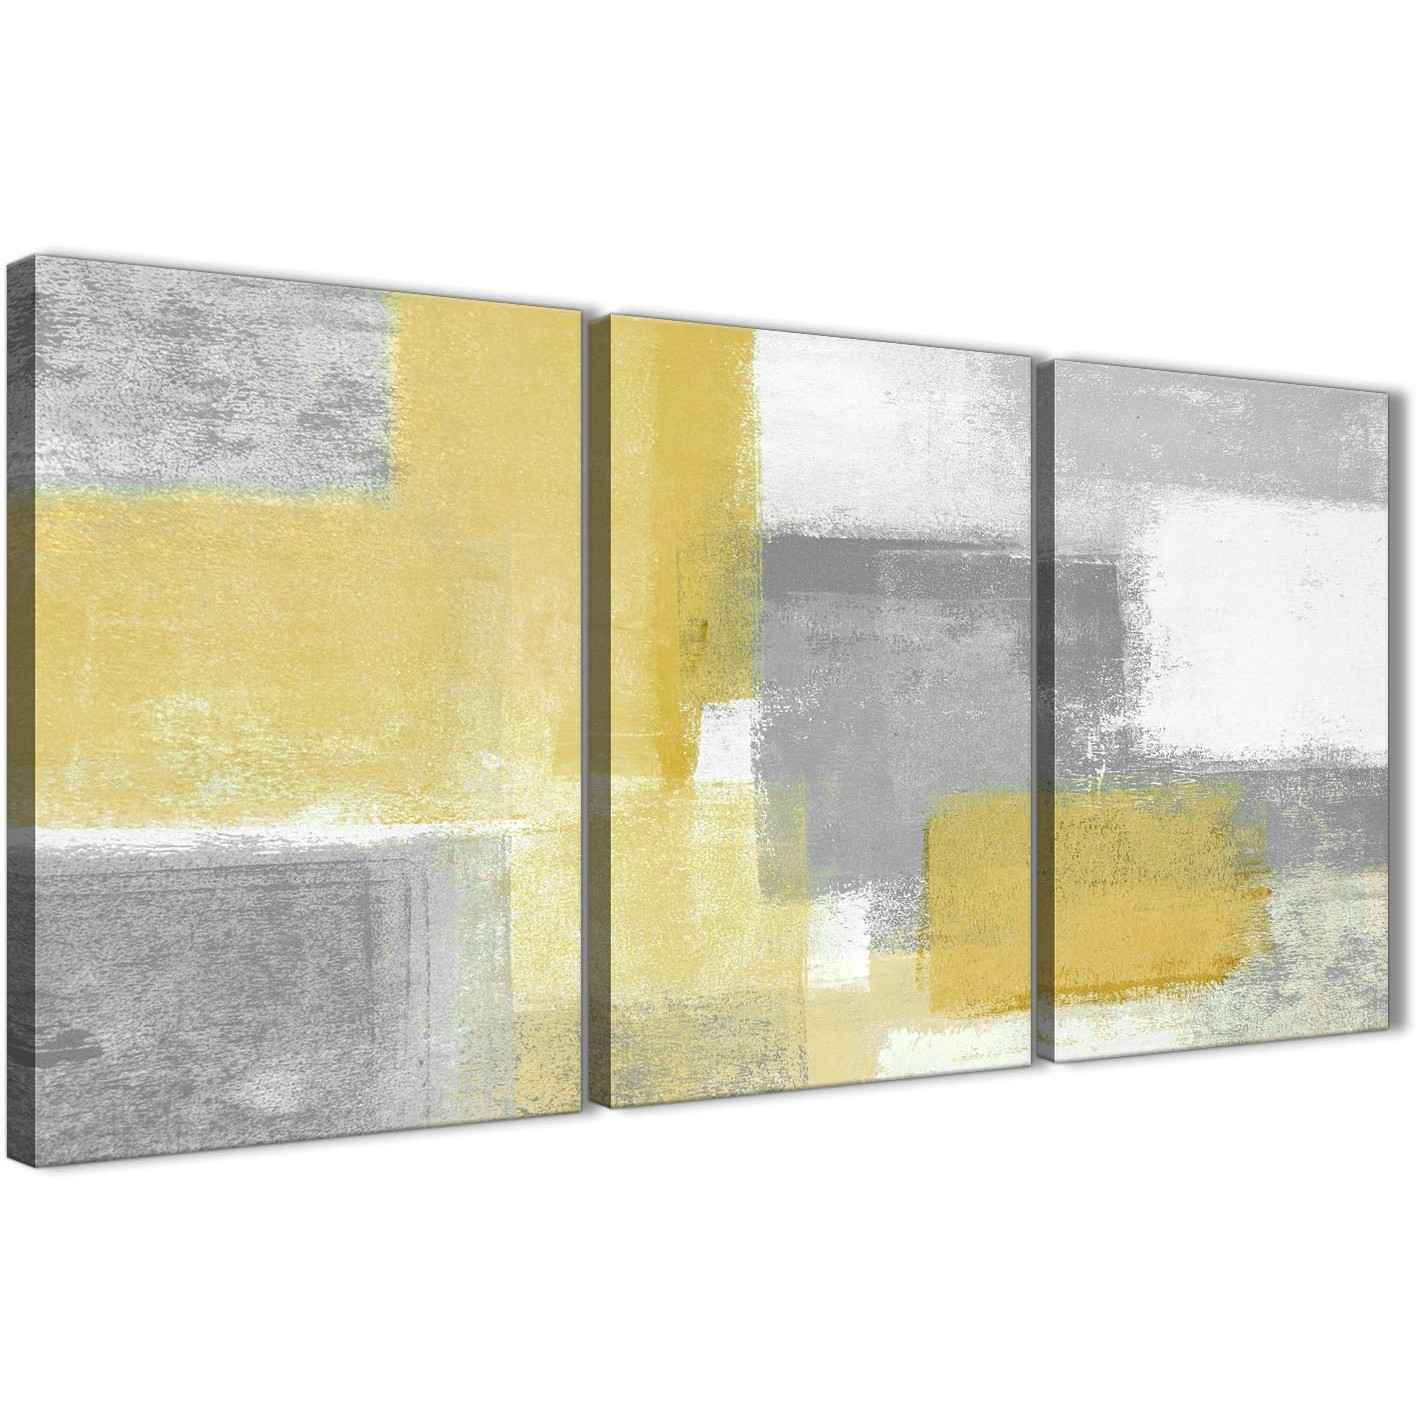 3 Panel Mustard Yellow Grey Kitchen Canvas Wall Art Decor – Abstract Regarding Newest Yellow Wall Art (View 2 of 20)